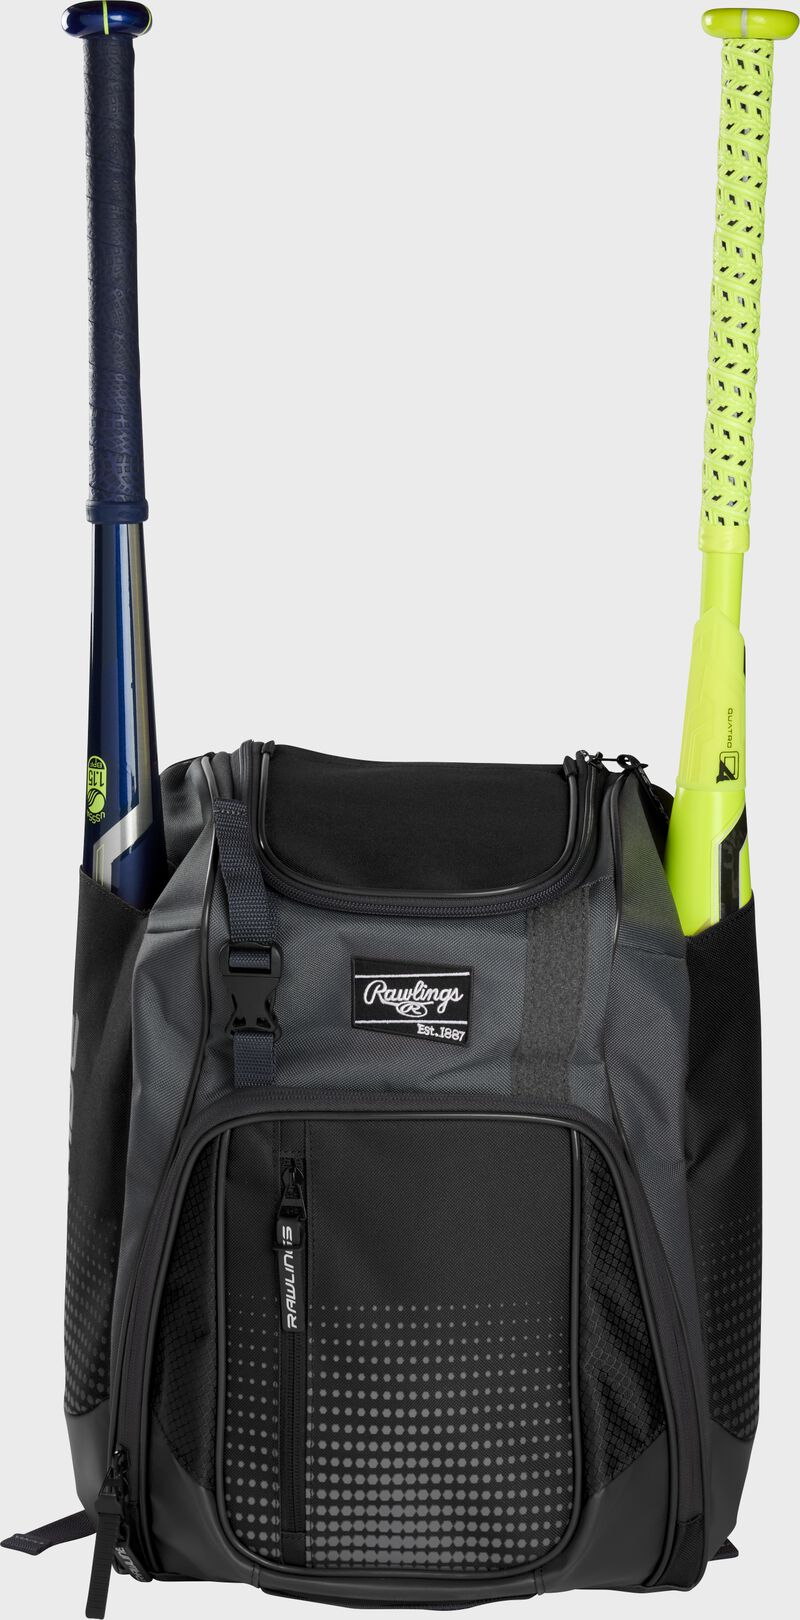 Front of a black Rawlings Franchise baseball backpack with two bats in the side sleeves - SKU: FRANBP-B